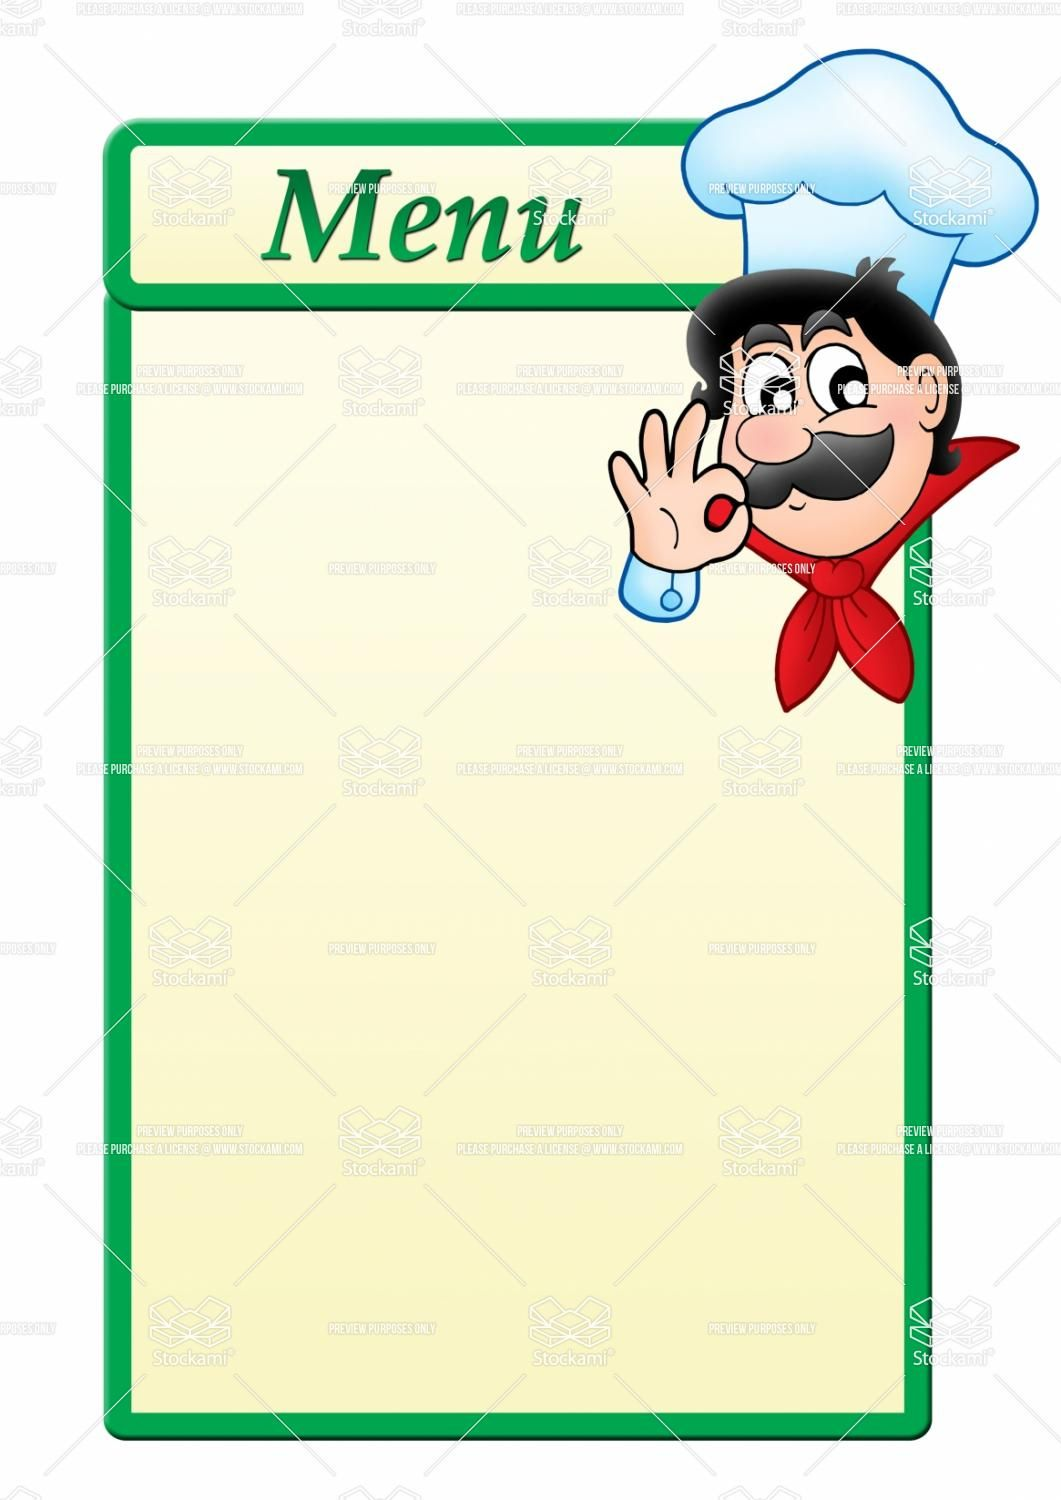 Stock image menu template with cartoon 1 061 for Menue templates